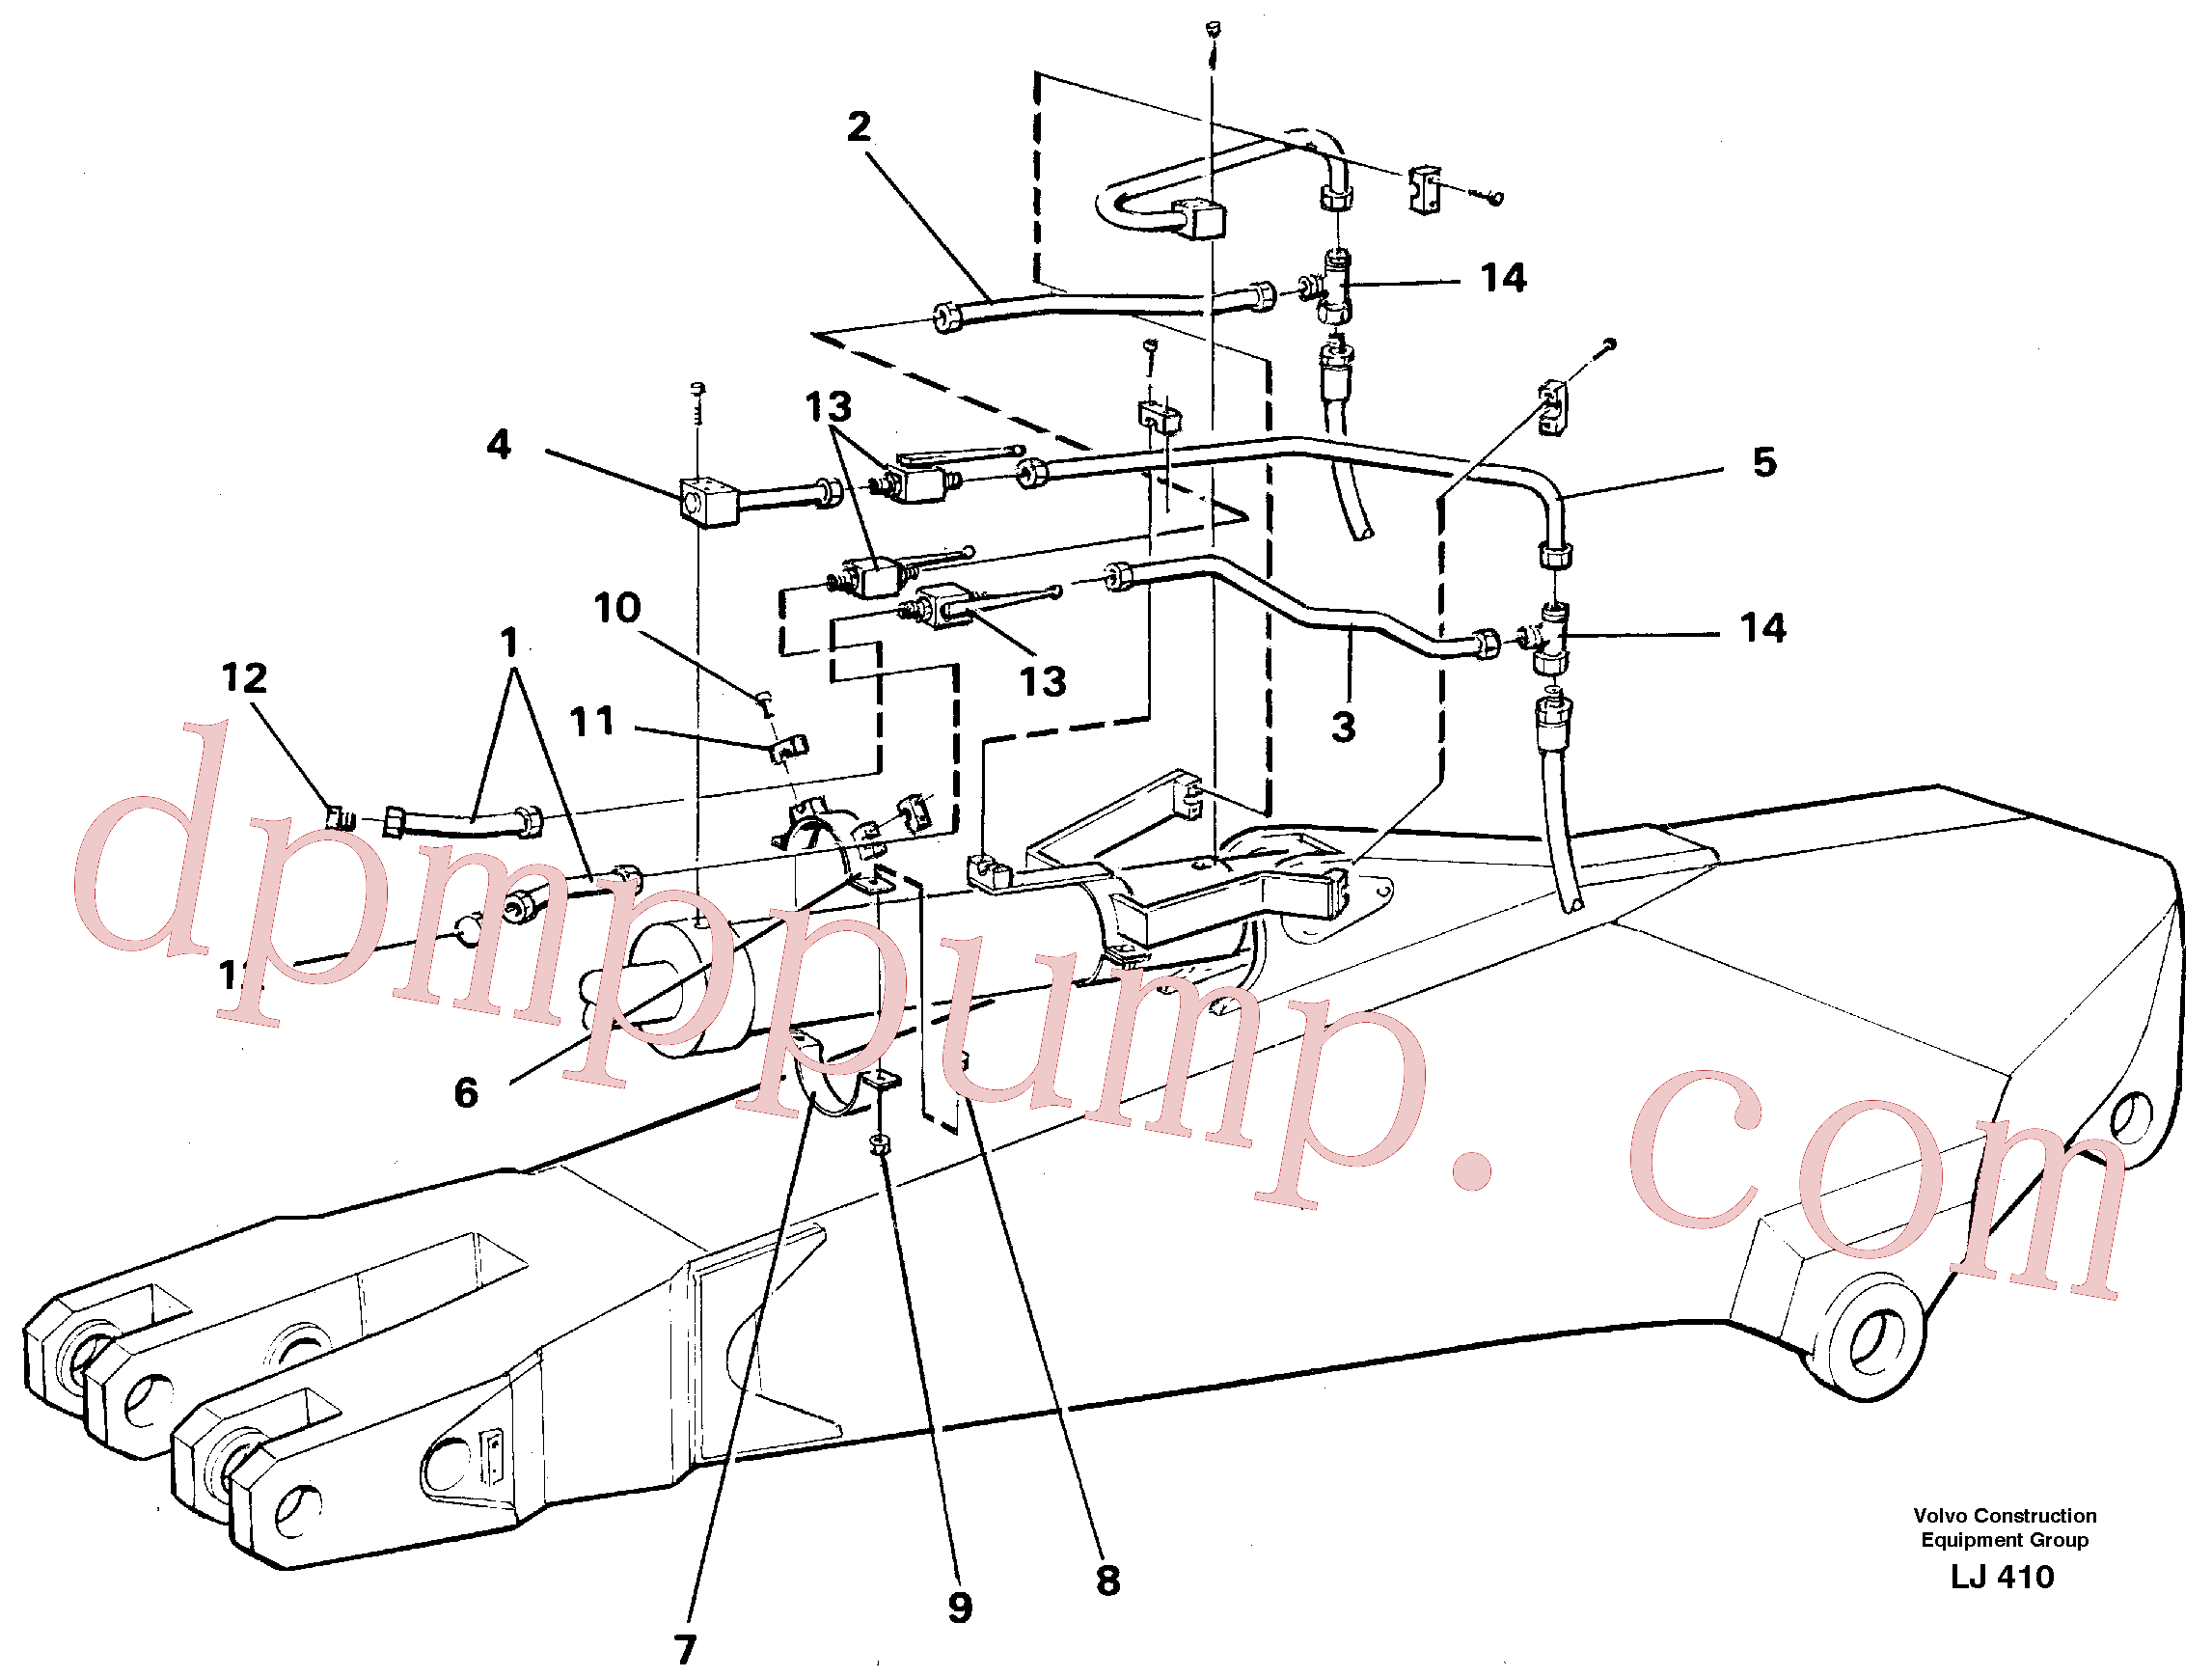 VOE14250695 for Volvo Parallel connected grab hydraulics incl. shut-offcocks on dipper arms.(LJ410 assembly)